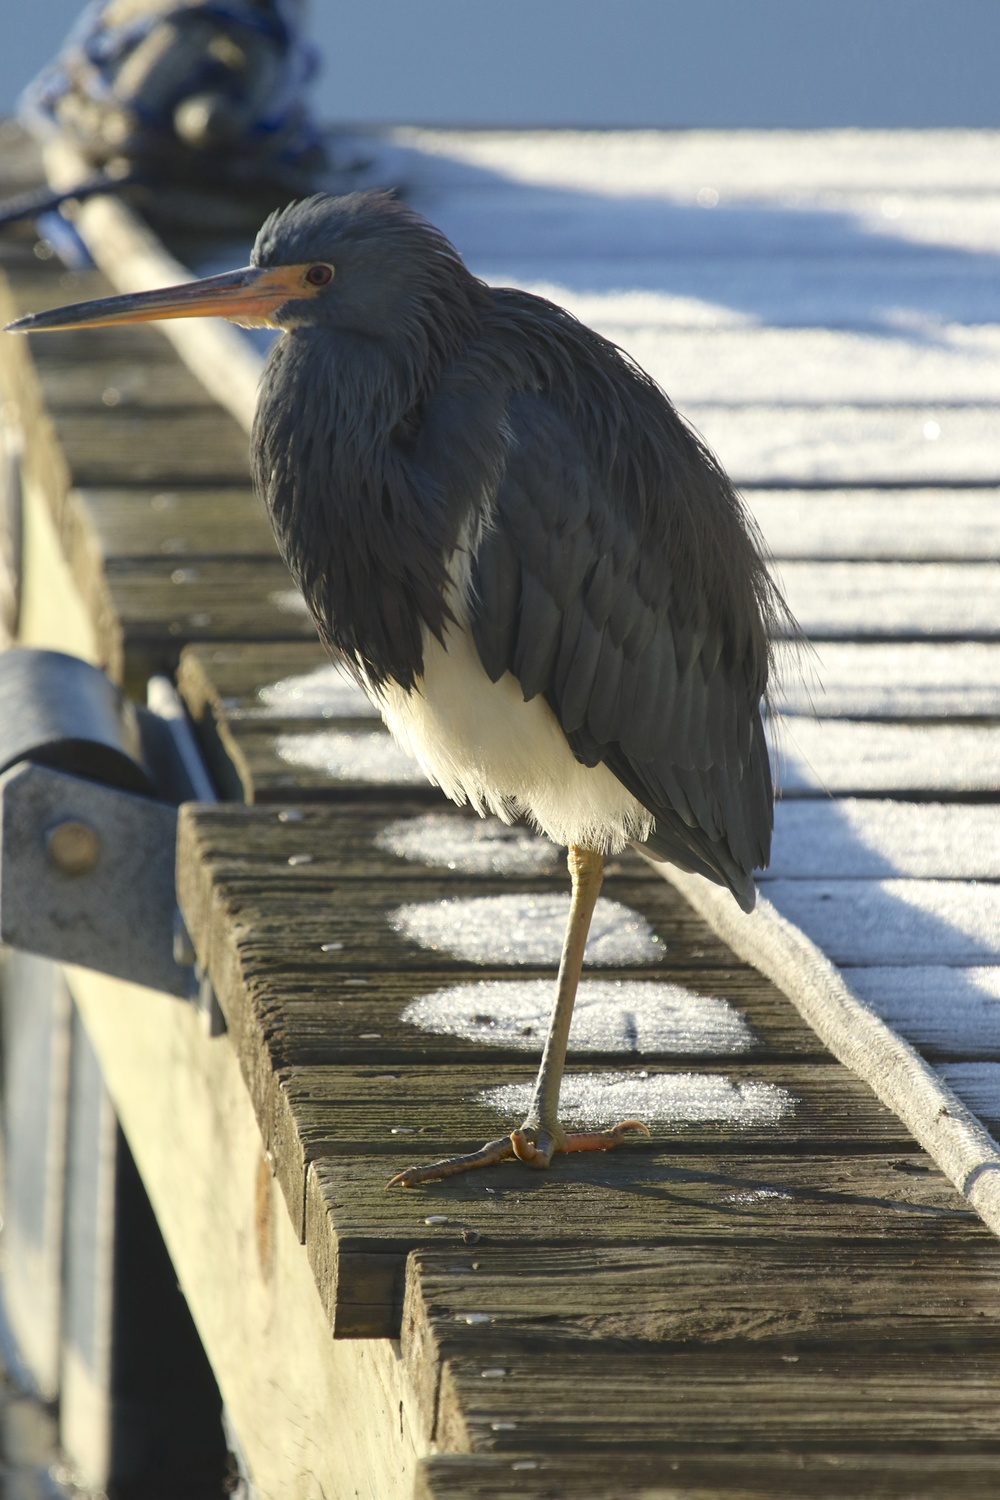 The frosty boards look like they are covered in snow. The heron's toes are frozen in a matter of moments..yet it watches and waits.